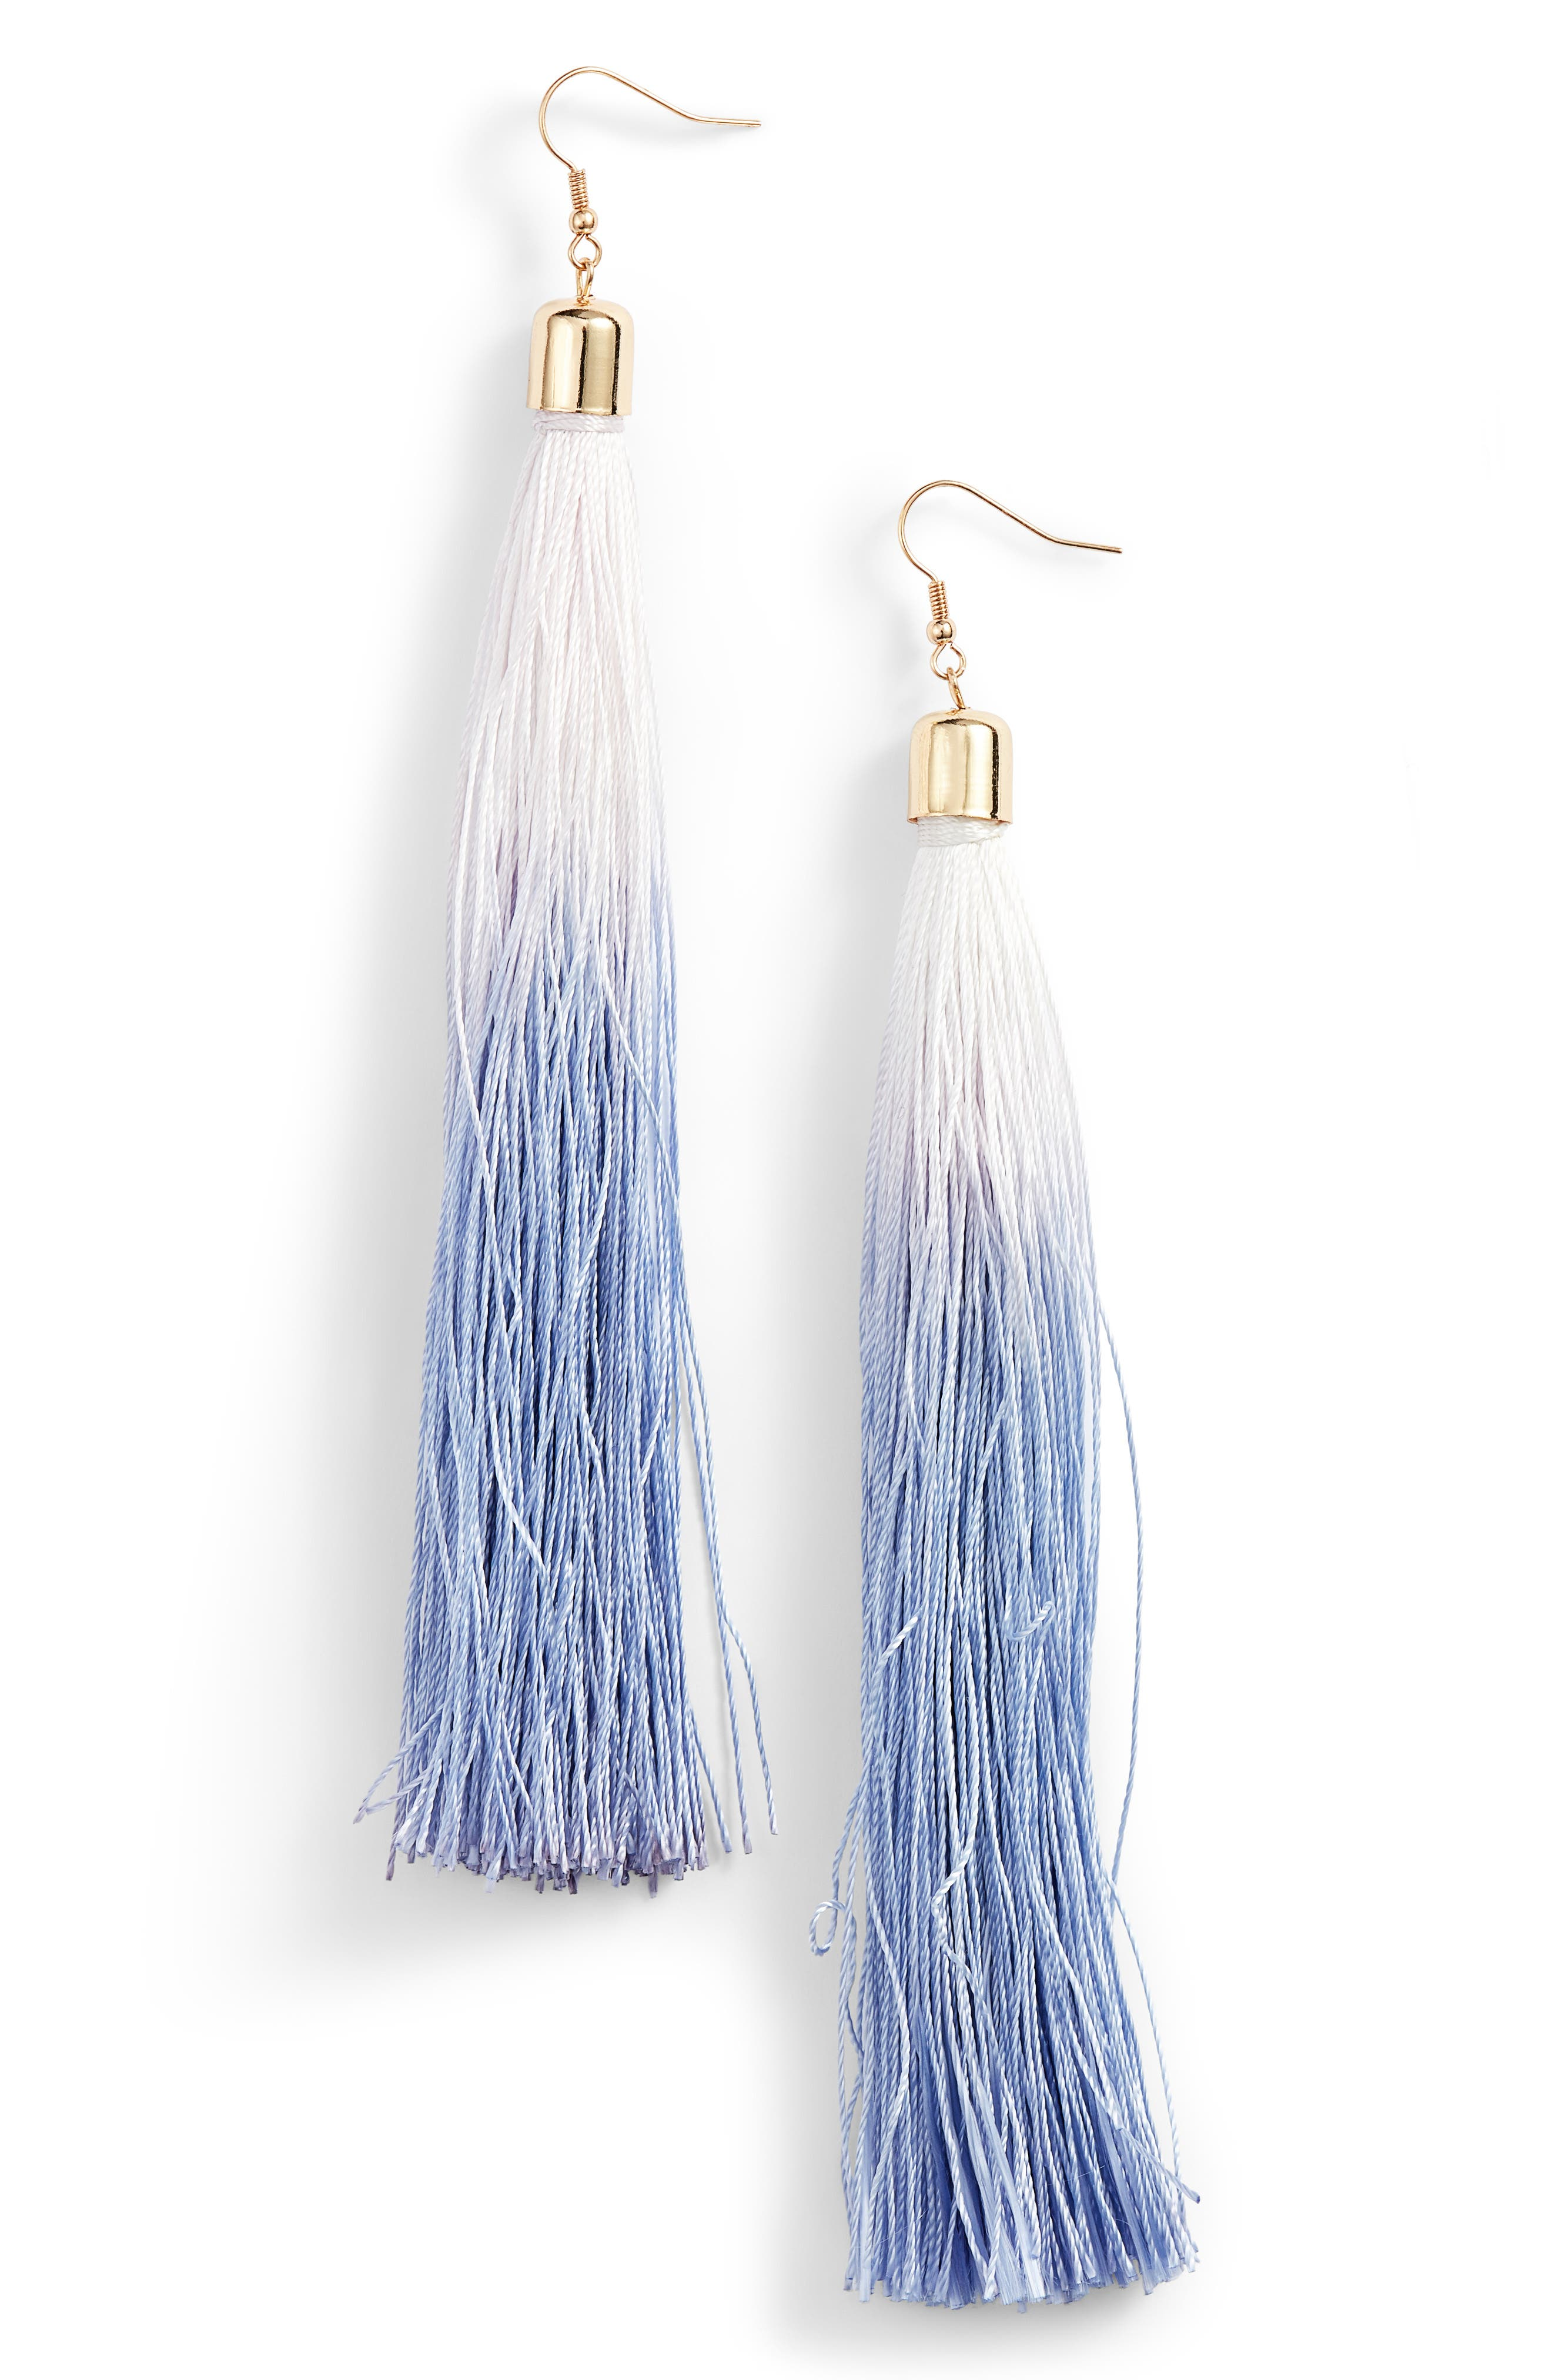 Ombré Tassel Earrings,                             Main thumbnail 1, color,                             Blue Ombre